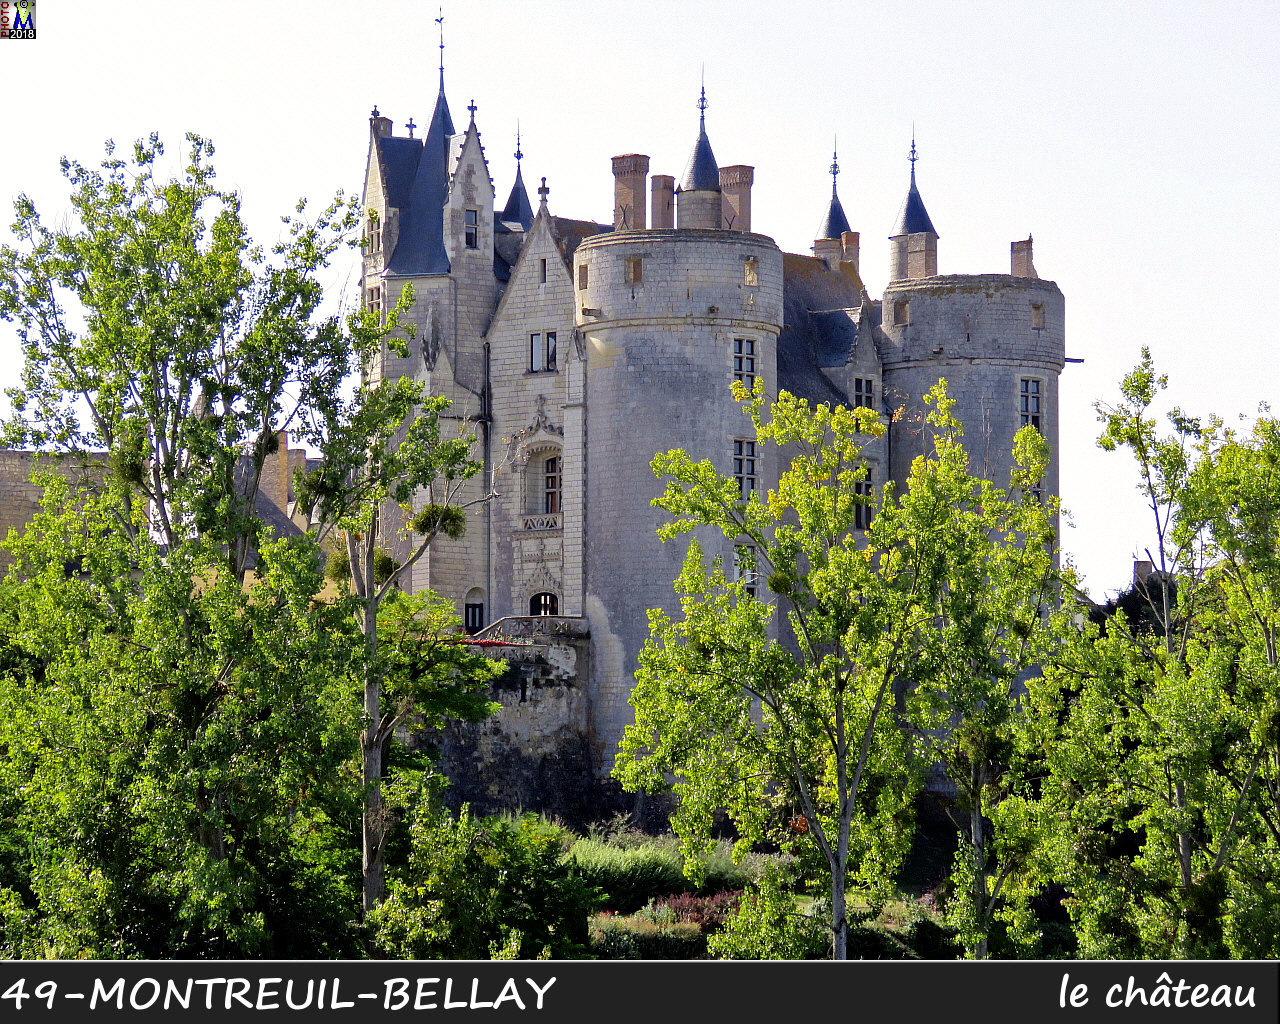 49MONTREUIL-BELLAY_chateau_1012.jpg